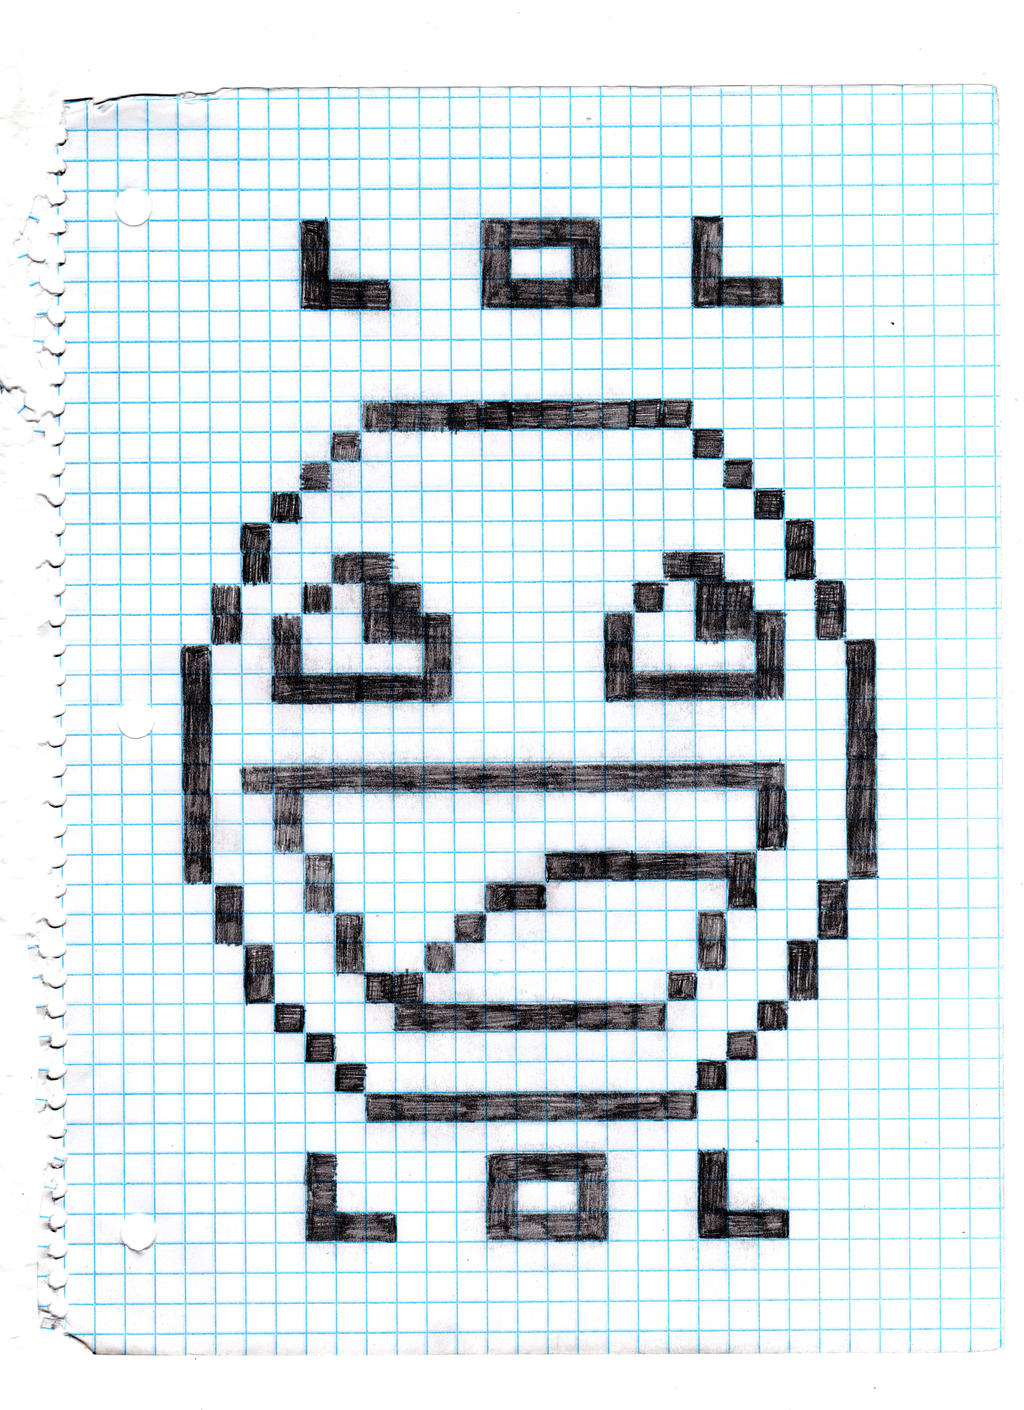 Graphing Paper Drawing Cool Drawings on Graph Paper